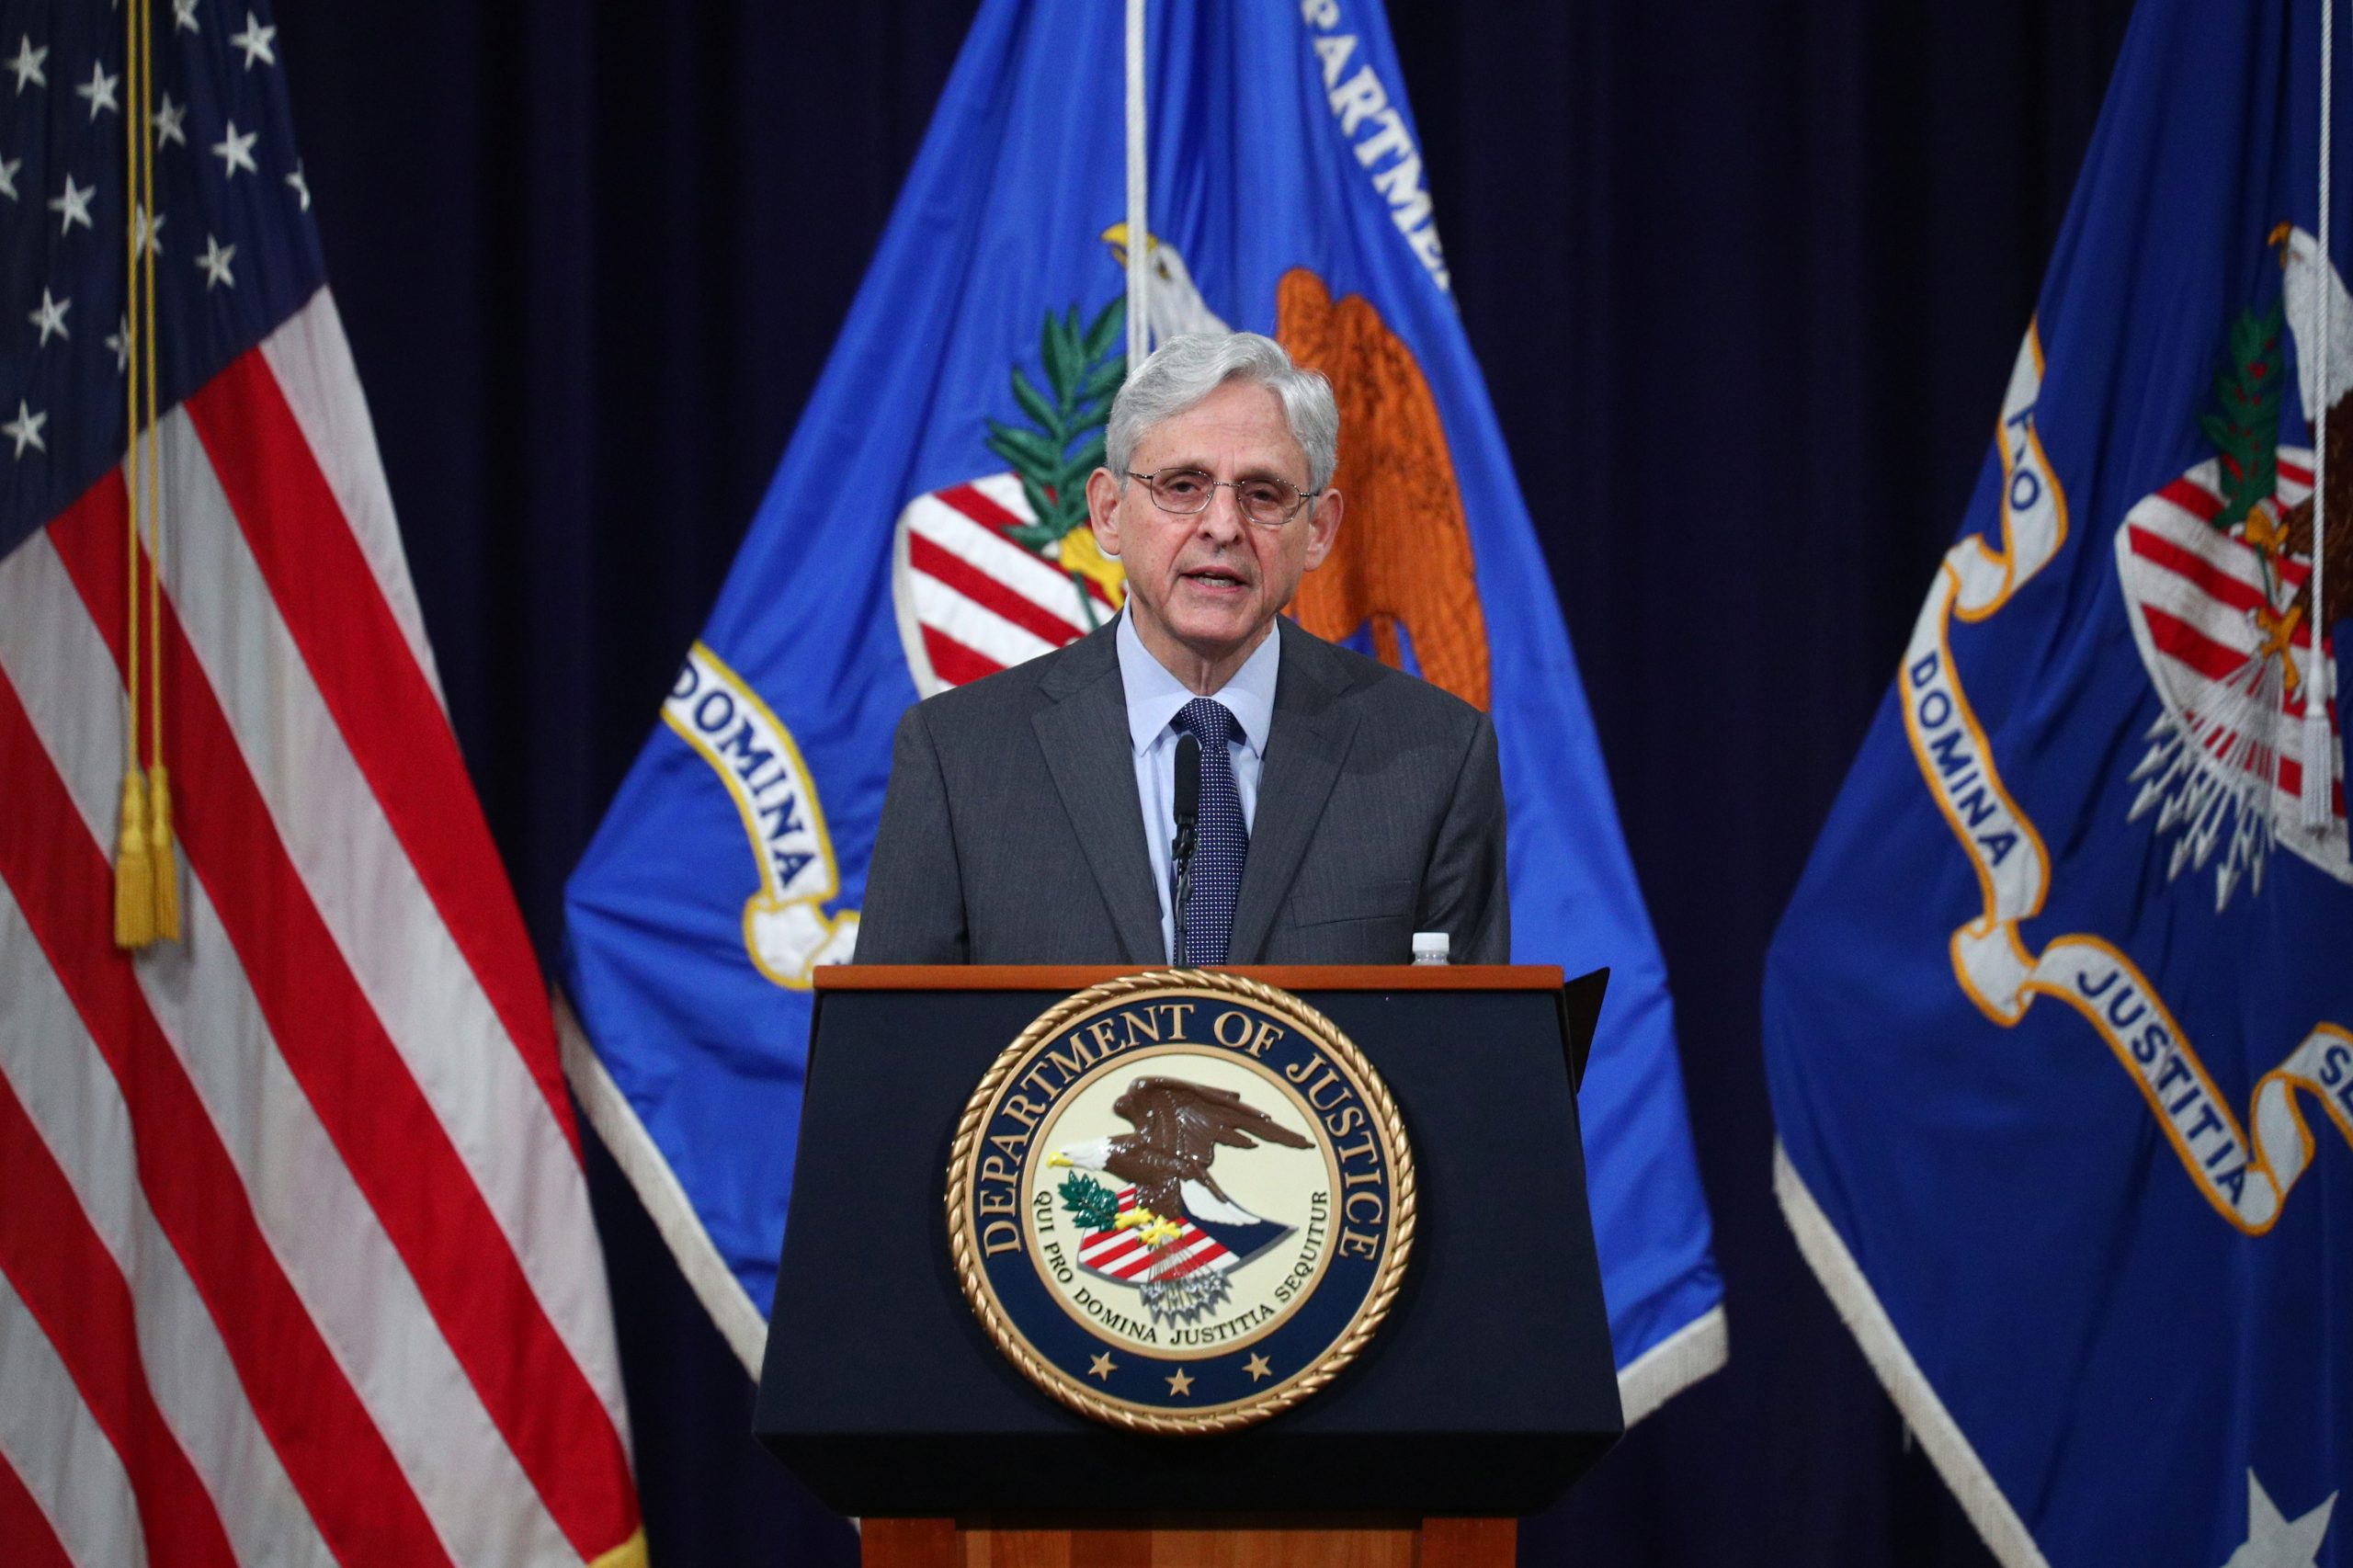 U.S. Attorney General Merrick Garland delivers remarks on voting rights at the U.S. Department of Justice in Washington